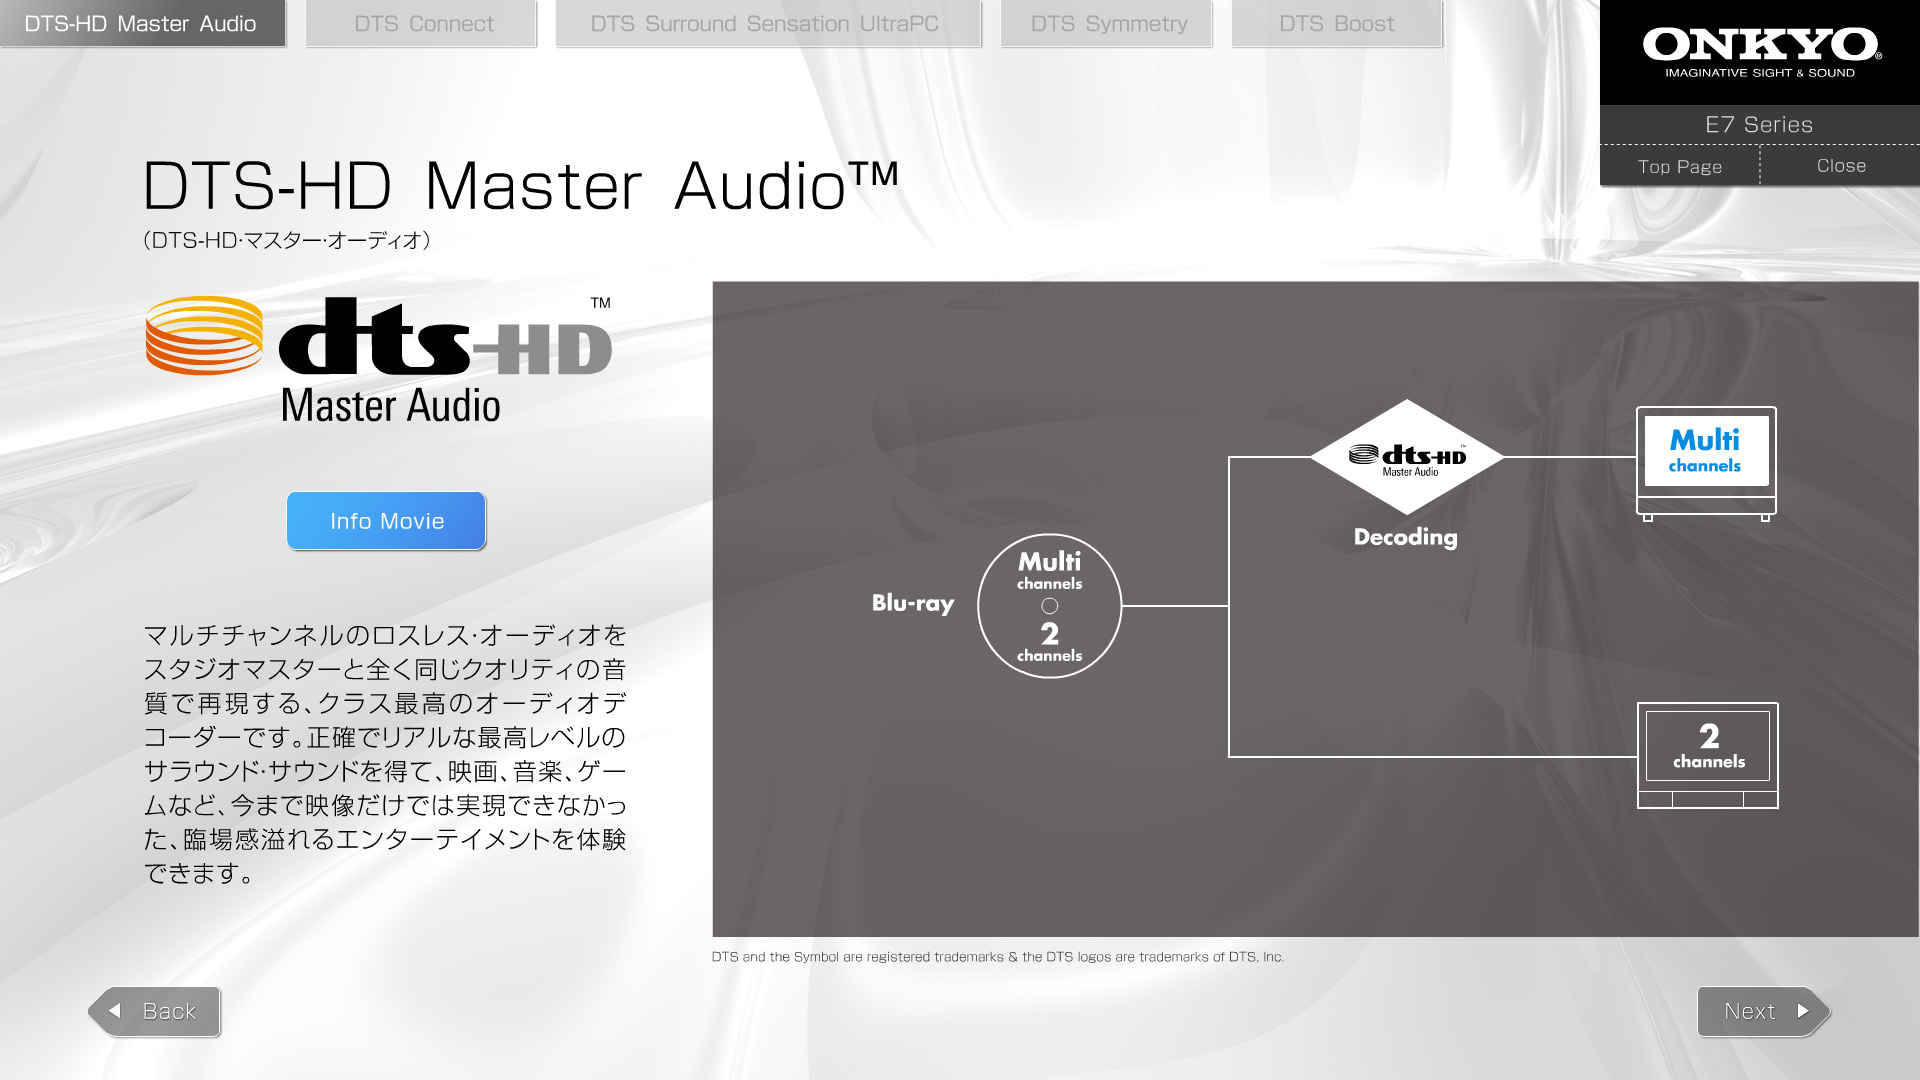 DTS-HD Master Audioの説明画面